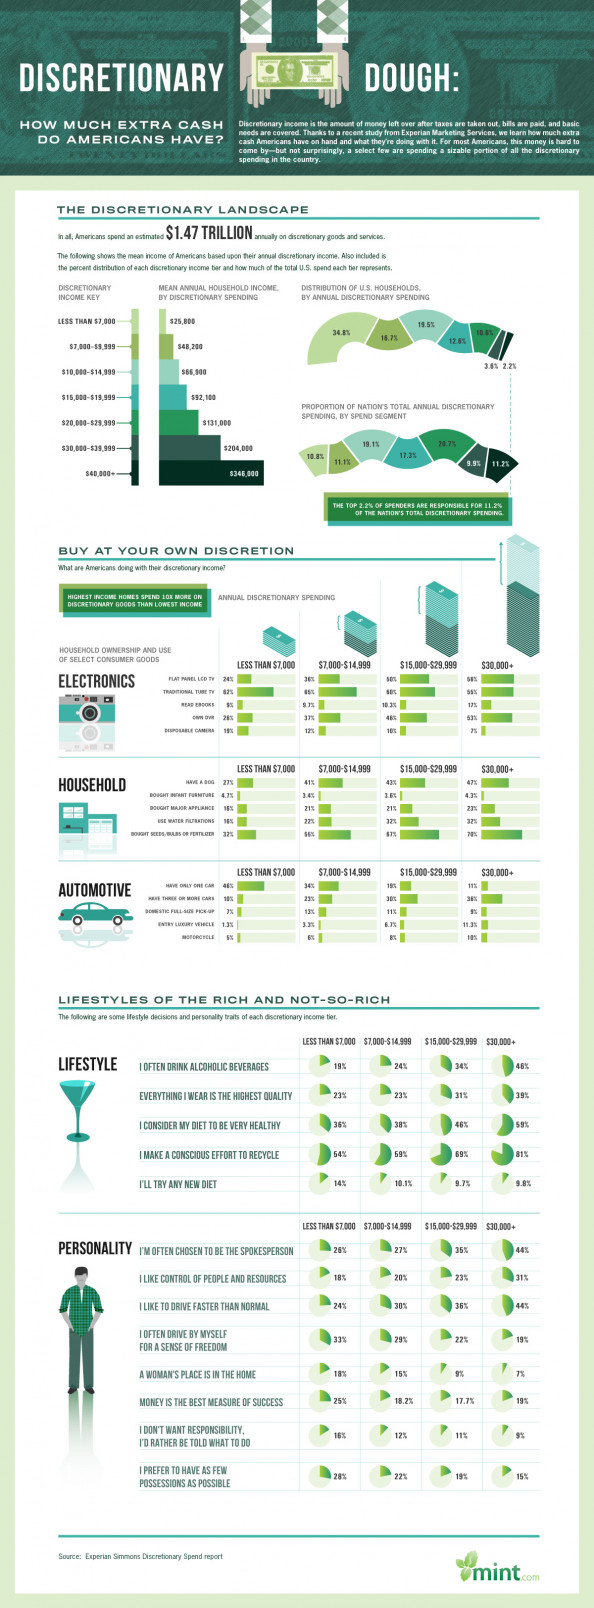 Discretionary Dough: How Much Extra Cash Do American&#039;s Have? Infographic